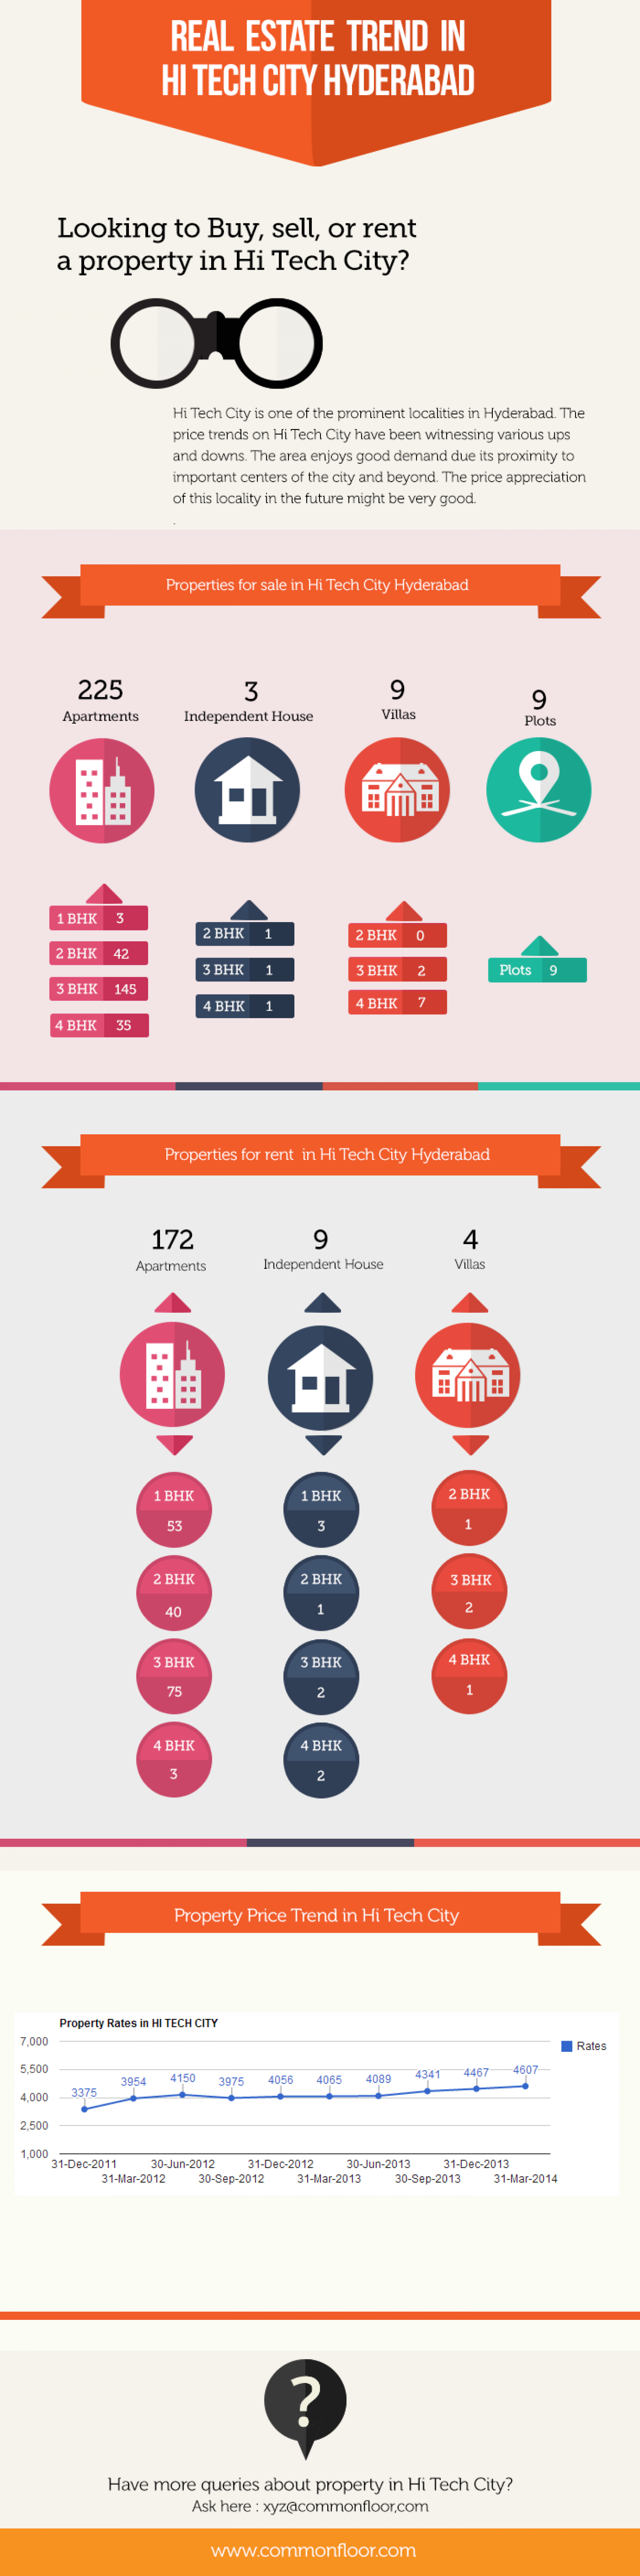 Real Estate Trend in Hi Tech City Hyderabad Infographic